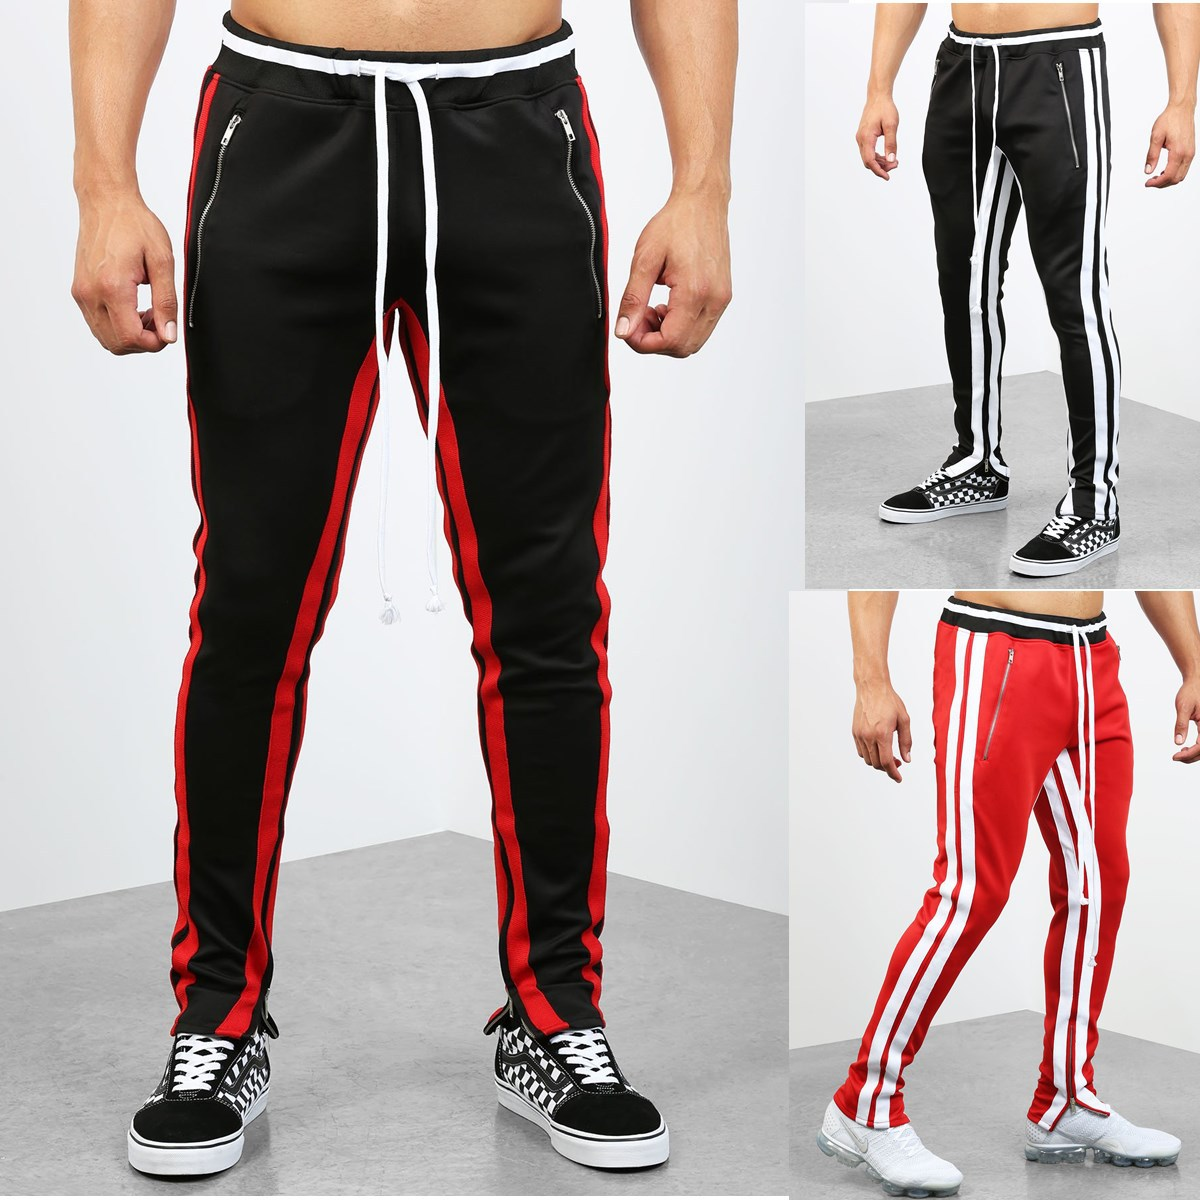 Hot Selling Men's Hip Hop Fitness Foot Mouth Zipper Pocket Velcro Bag Casual Sports Joint Trousers